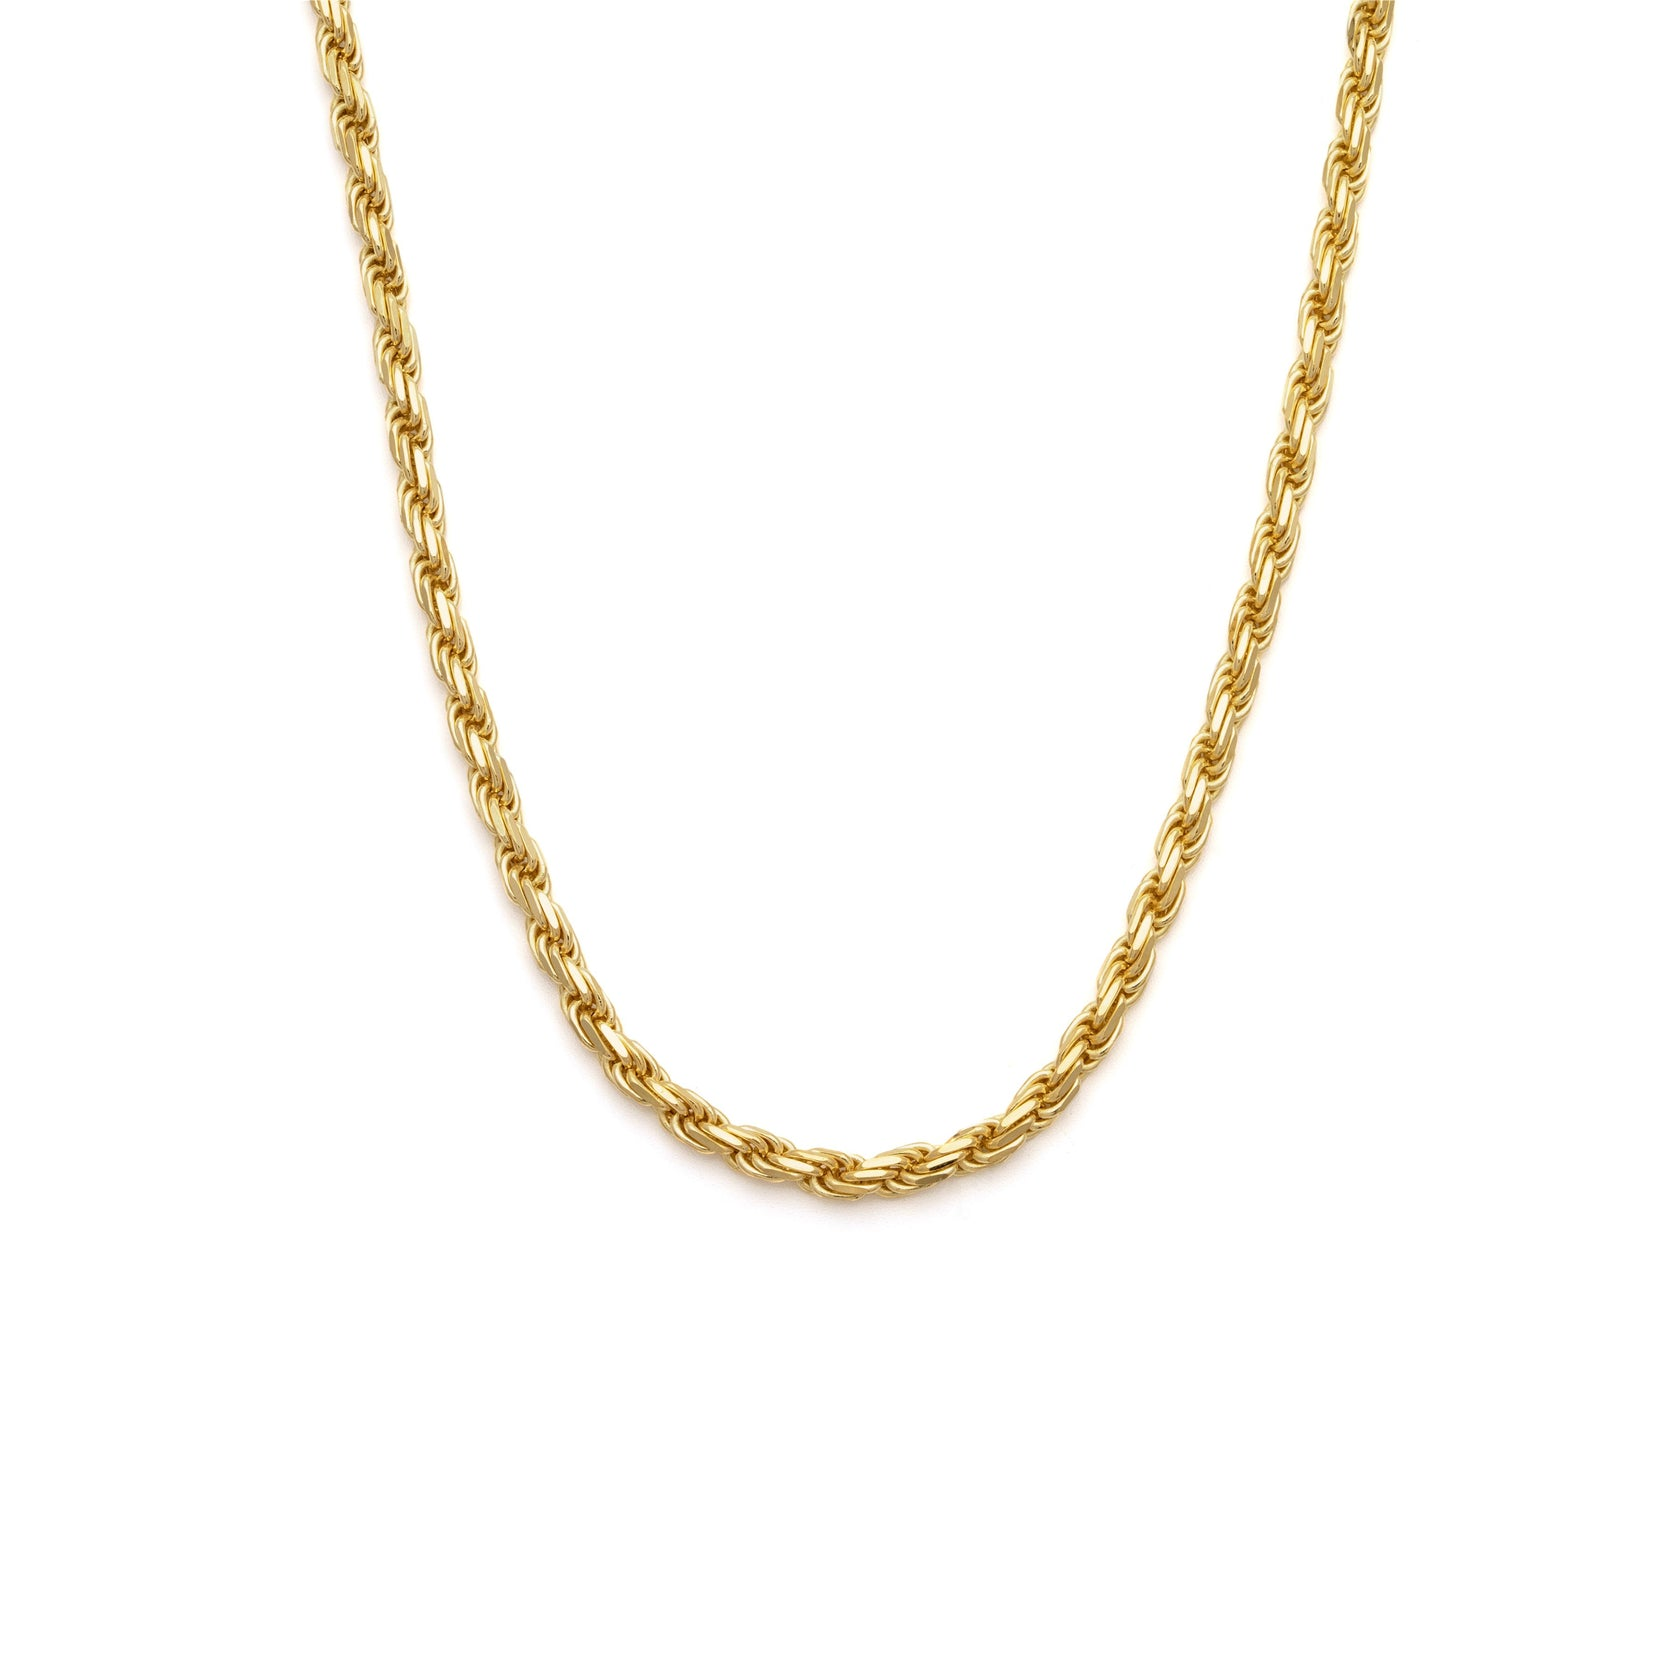 Thick Rope Chain - 10k Solid Gold